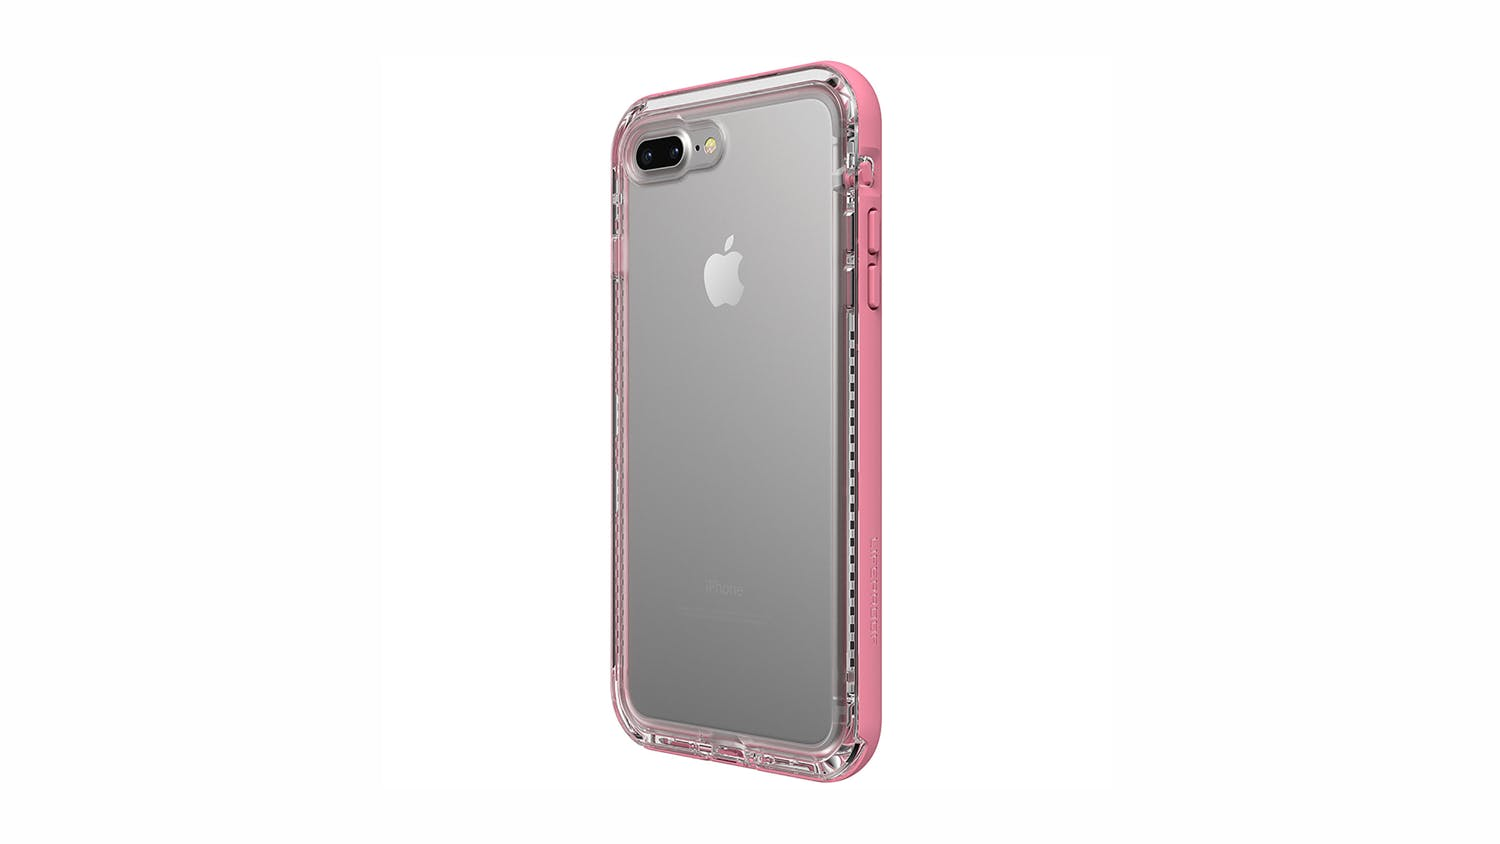 LifeProof Next Case for iPhone 7 Plus 8 Plus  bcd0b5377